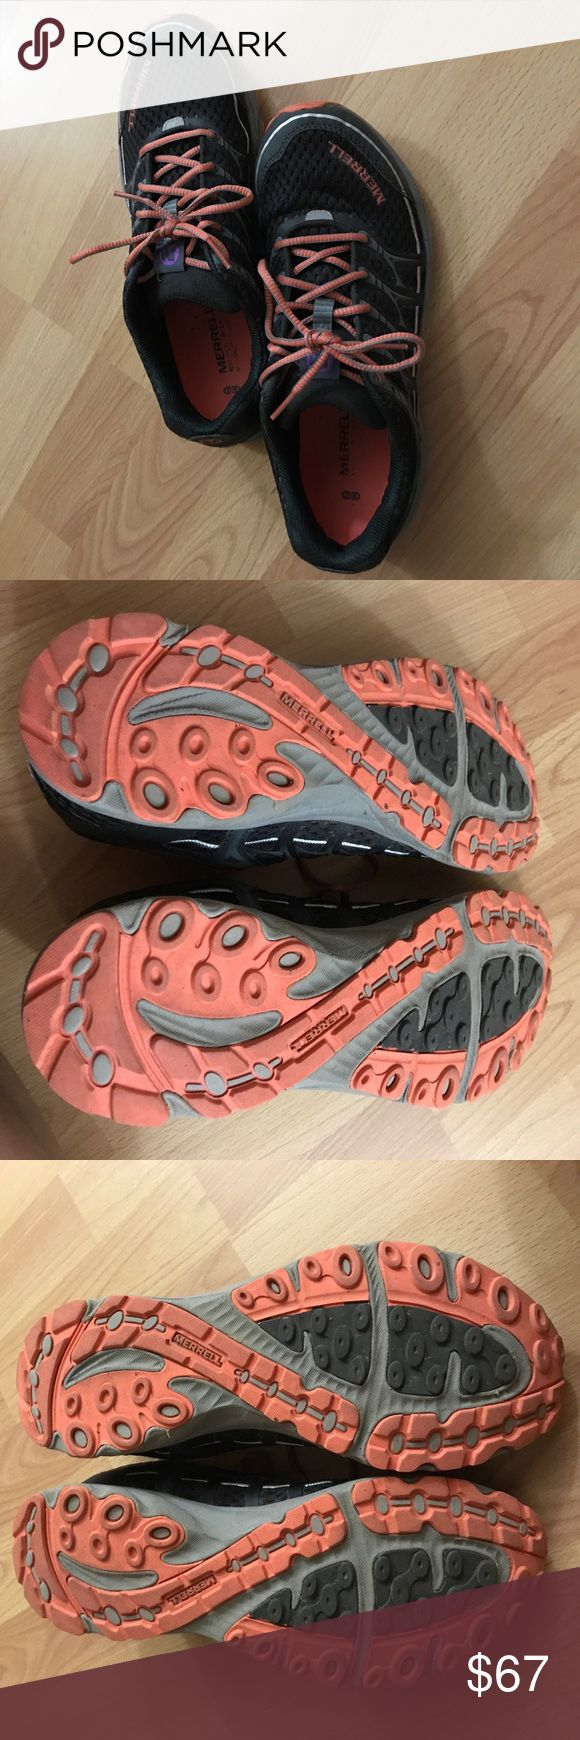 Merrell Minimalist Trail Running Shoes Black, gray, orange, silver, and purple colors.  Minimalist trail running shoes.  These still have a lot of life left.  They can be cleaned up.  Great shoe, I just decided I needed a little more padding.  Does have a loose thread where the shoes lace through on top of the tongue, but doesn't affect the function of the shoe.    Please see pics.  I would love for someone to give them a new home. Merrell Shoes Athletic Shoes